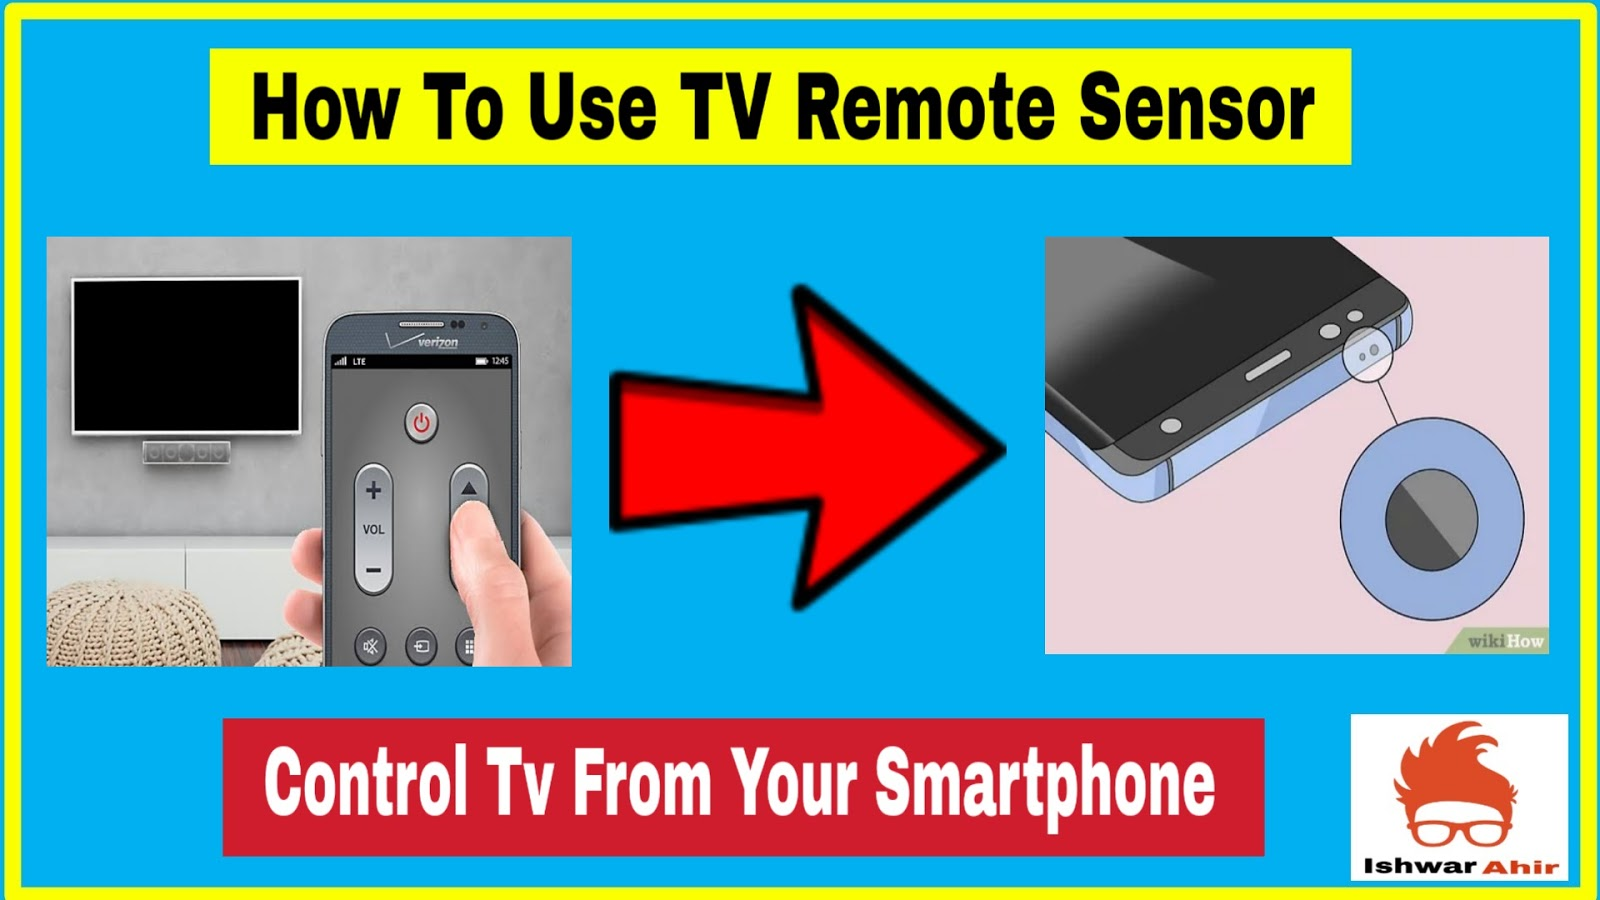 How to Use TV Remote Sensor in Android